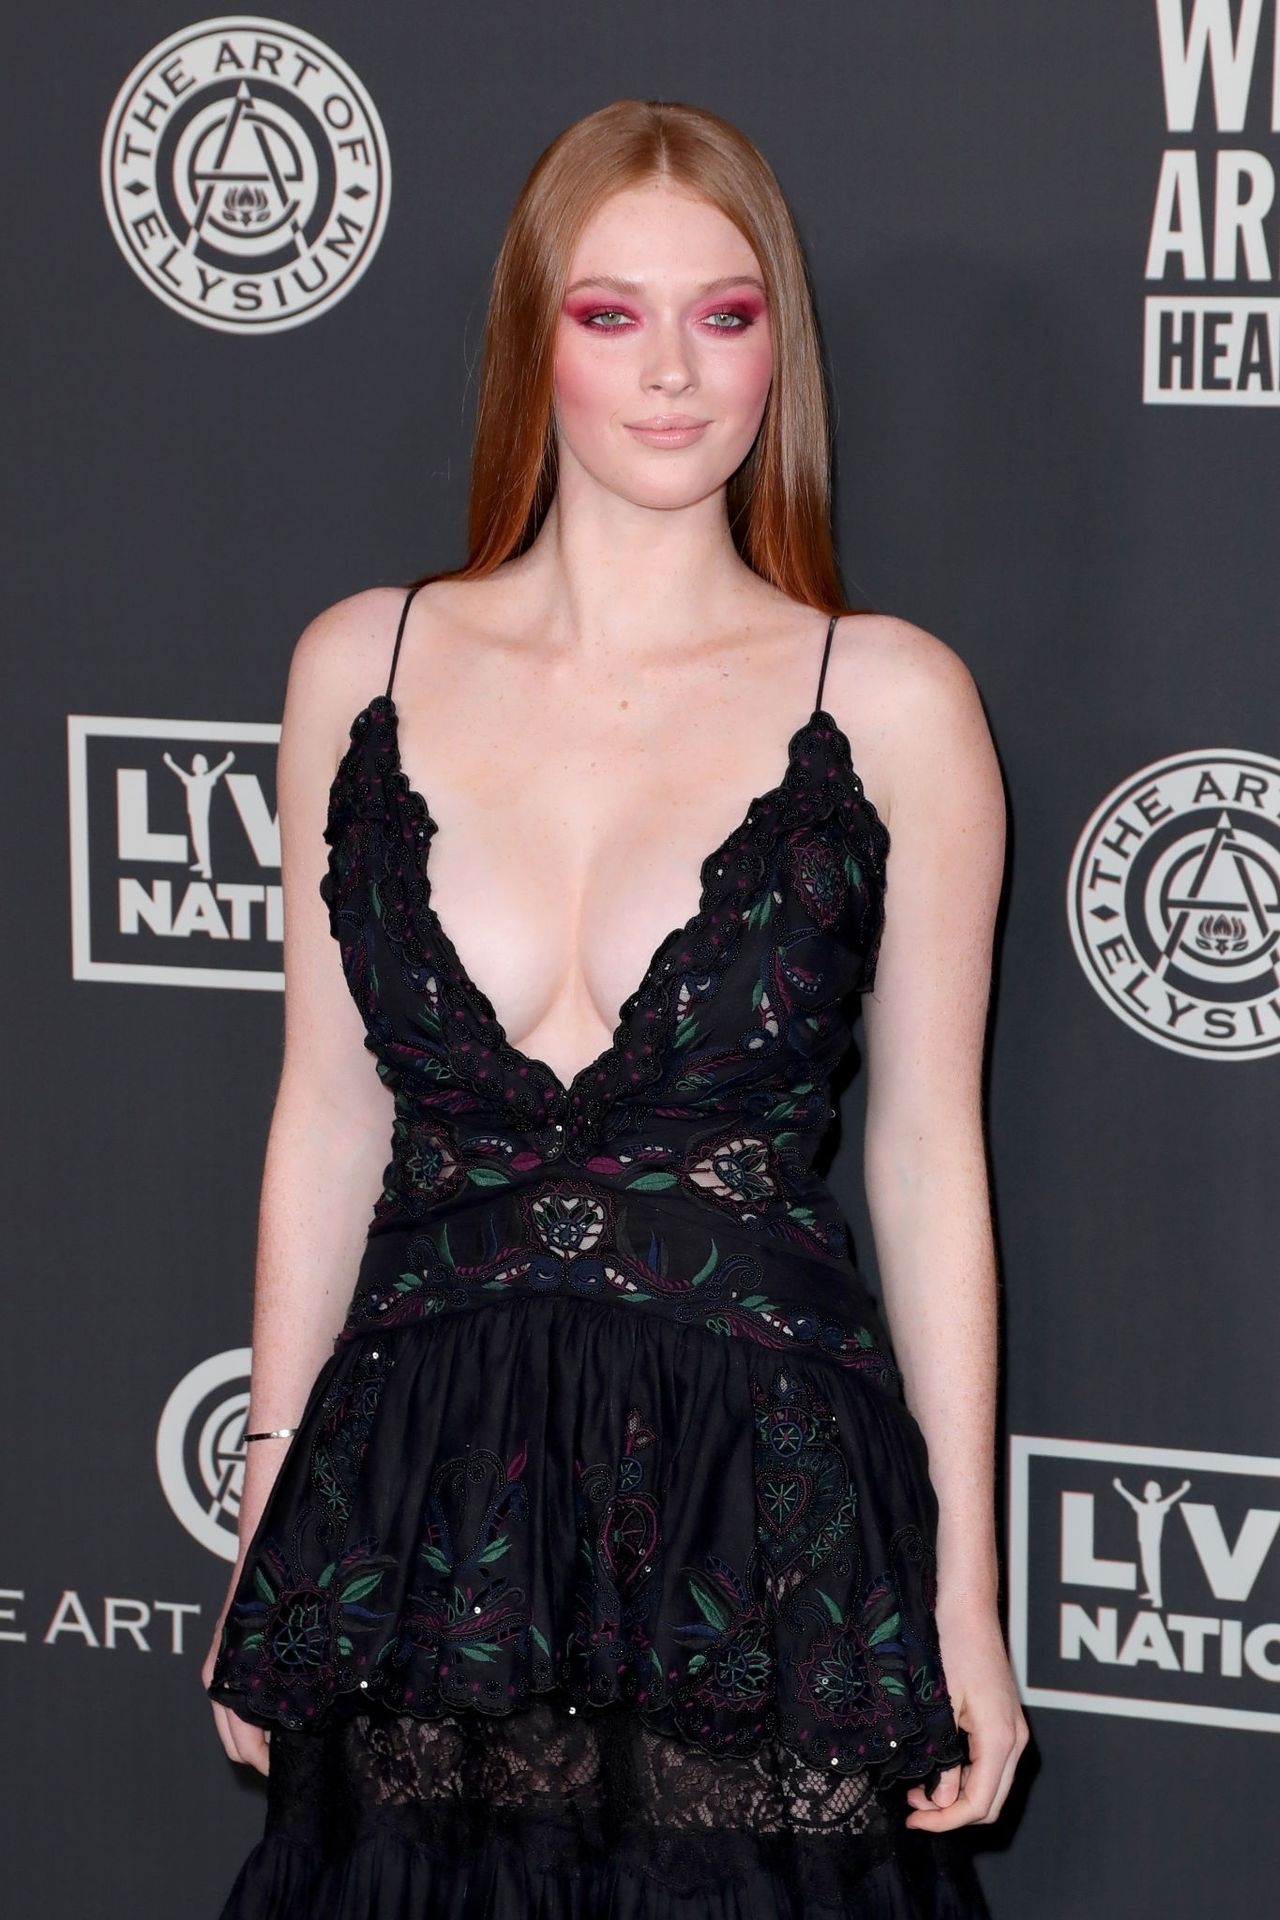 Larsen Thompson's Cleavage At The Art Of Elysium's 13th Annual Black Tie Artistic Experience Heaven 0011